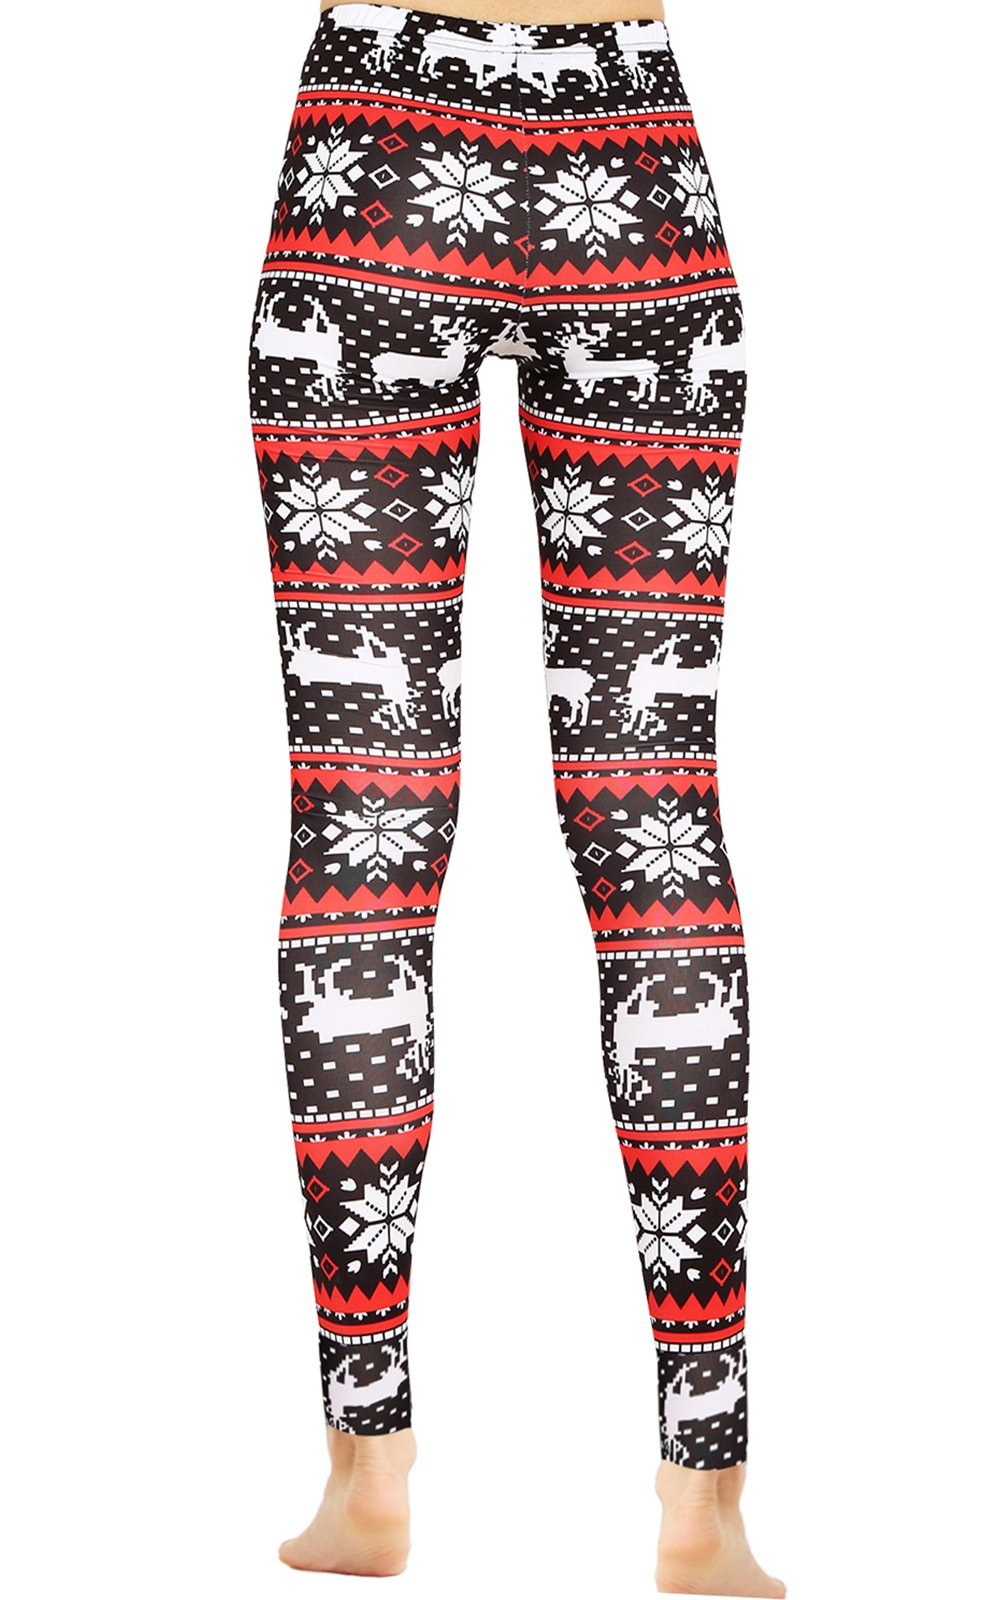 Christmas Reindeer Patterned Stretchy Ankle Leggings Tights Party Costume L